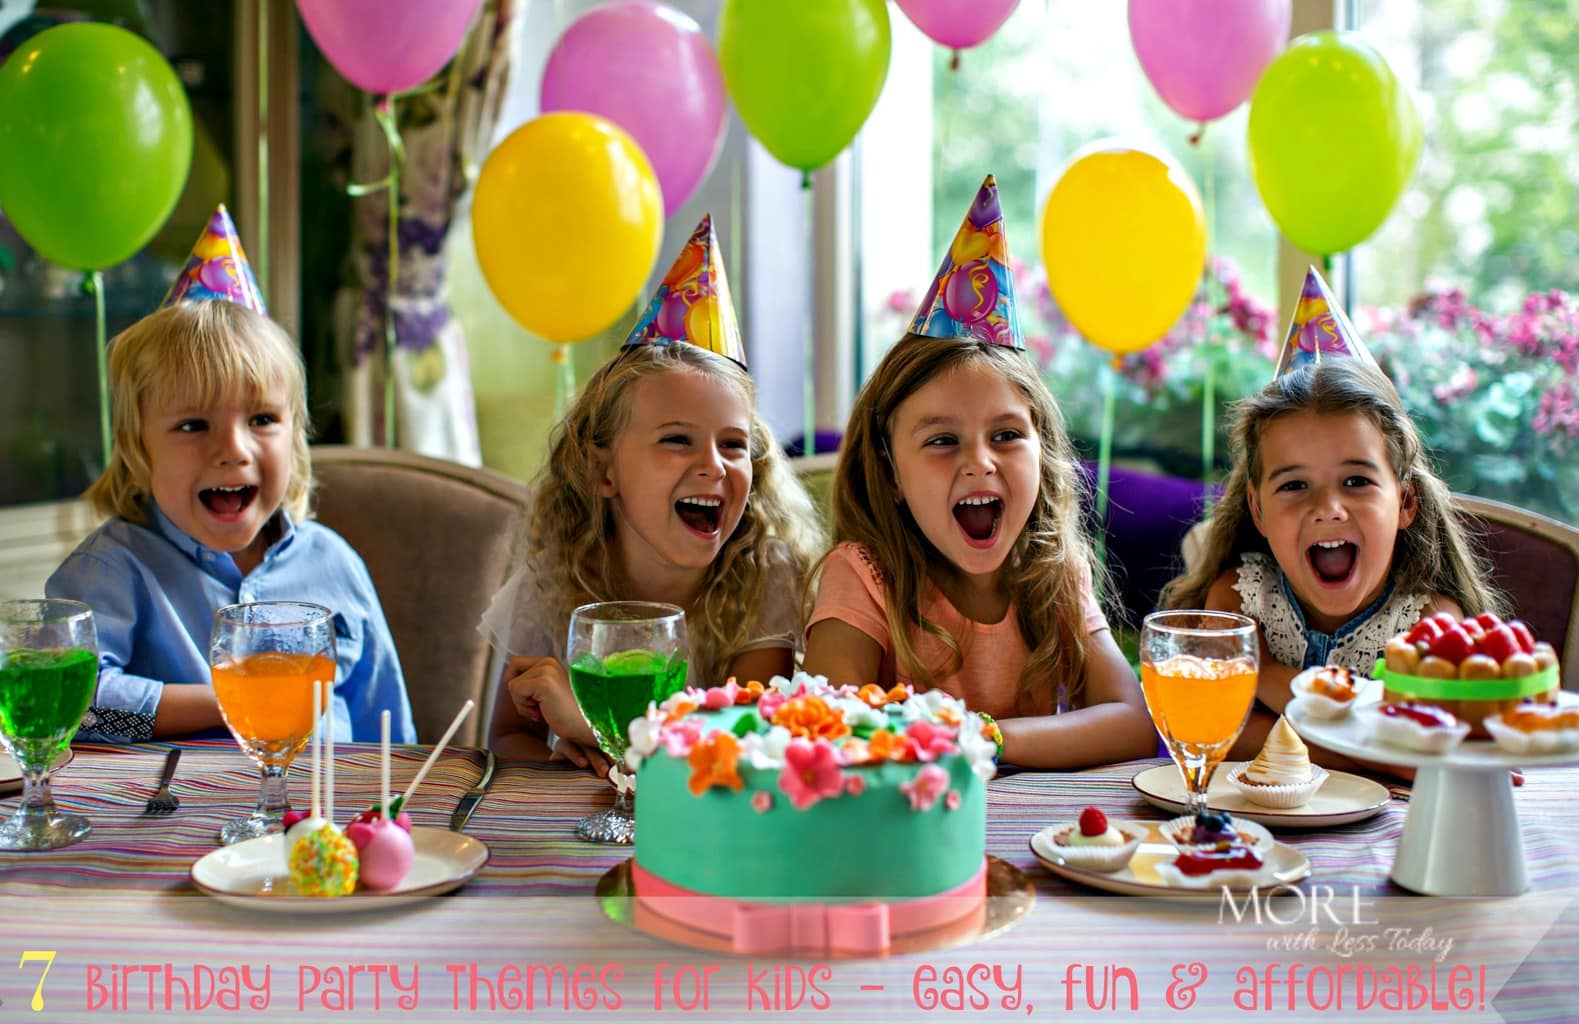 Fun And Inexpensive Theme Ideas For Kids Birthday Parties